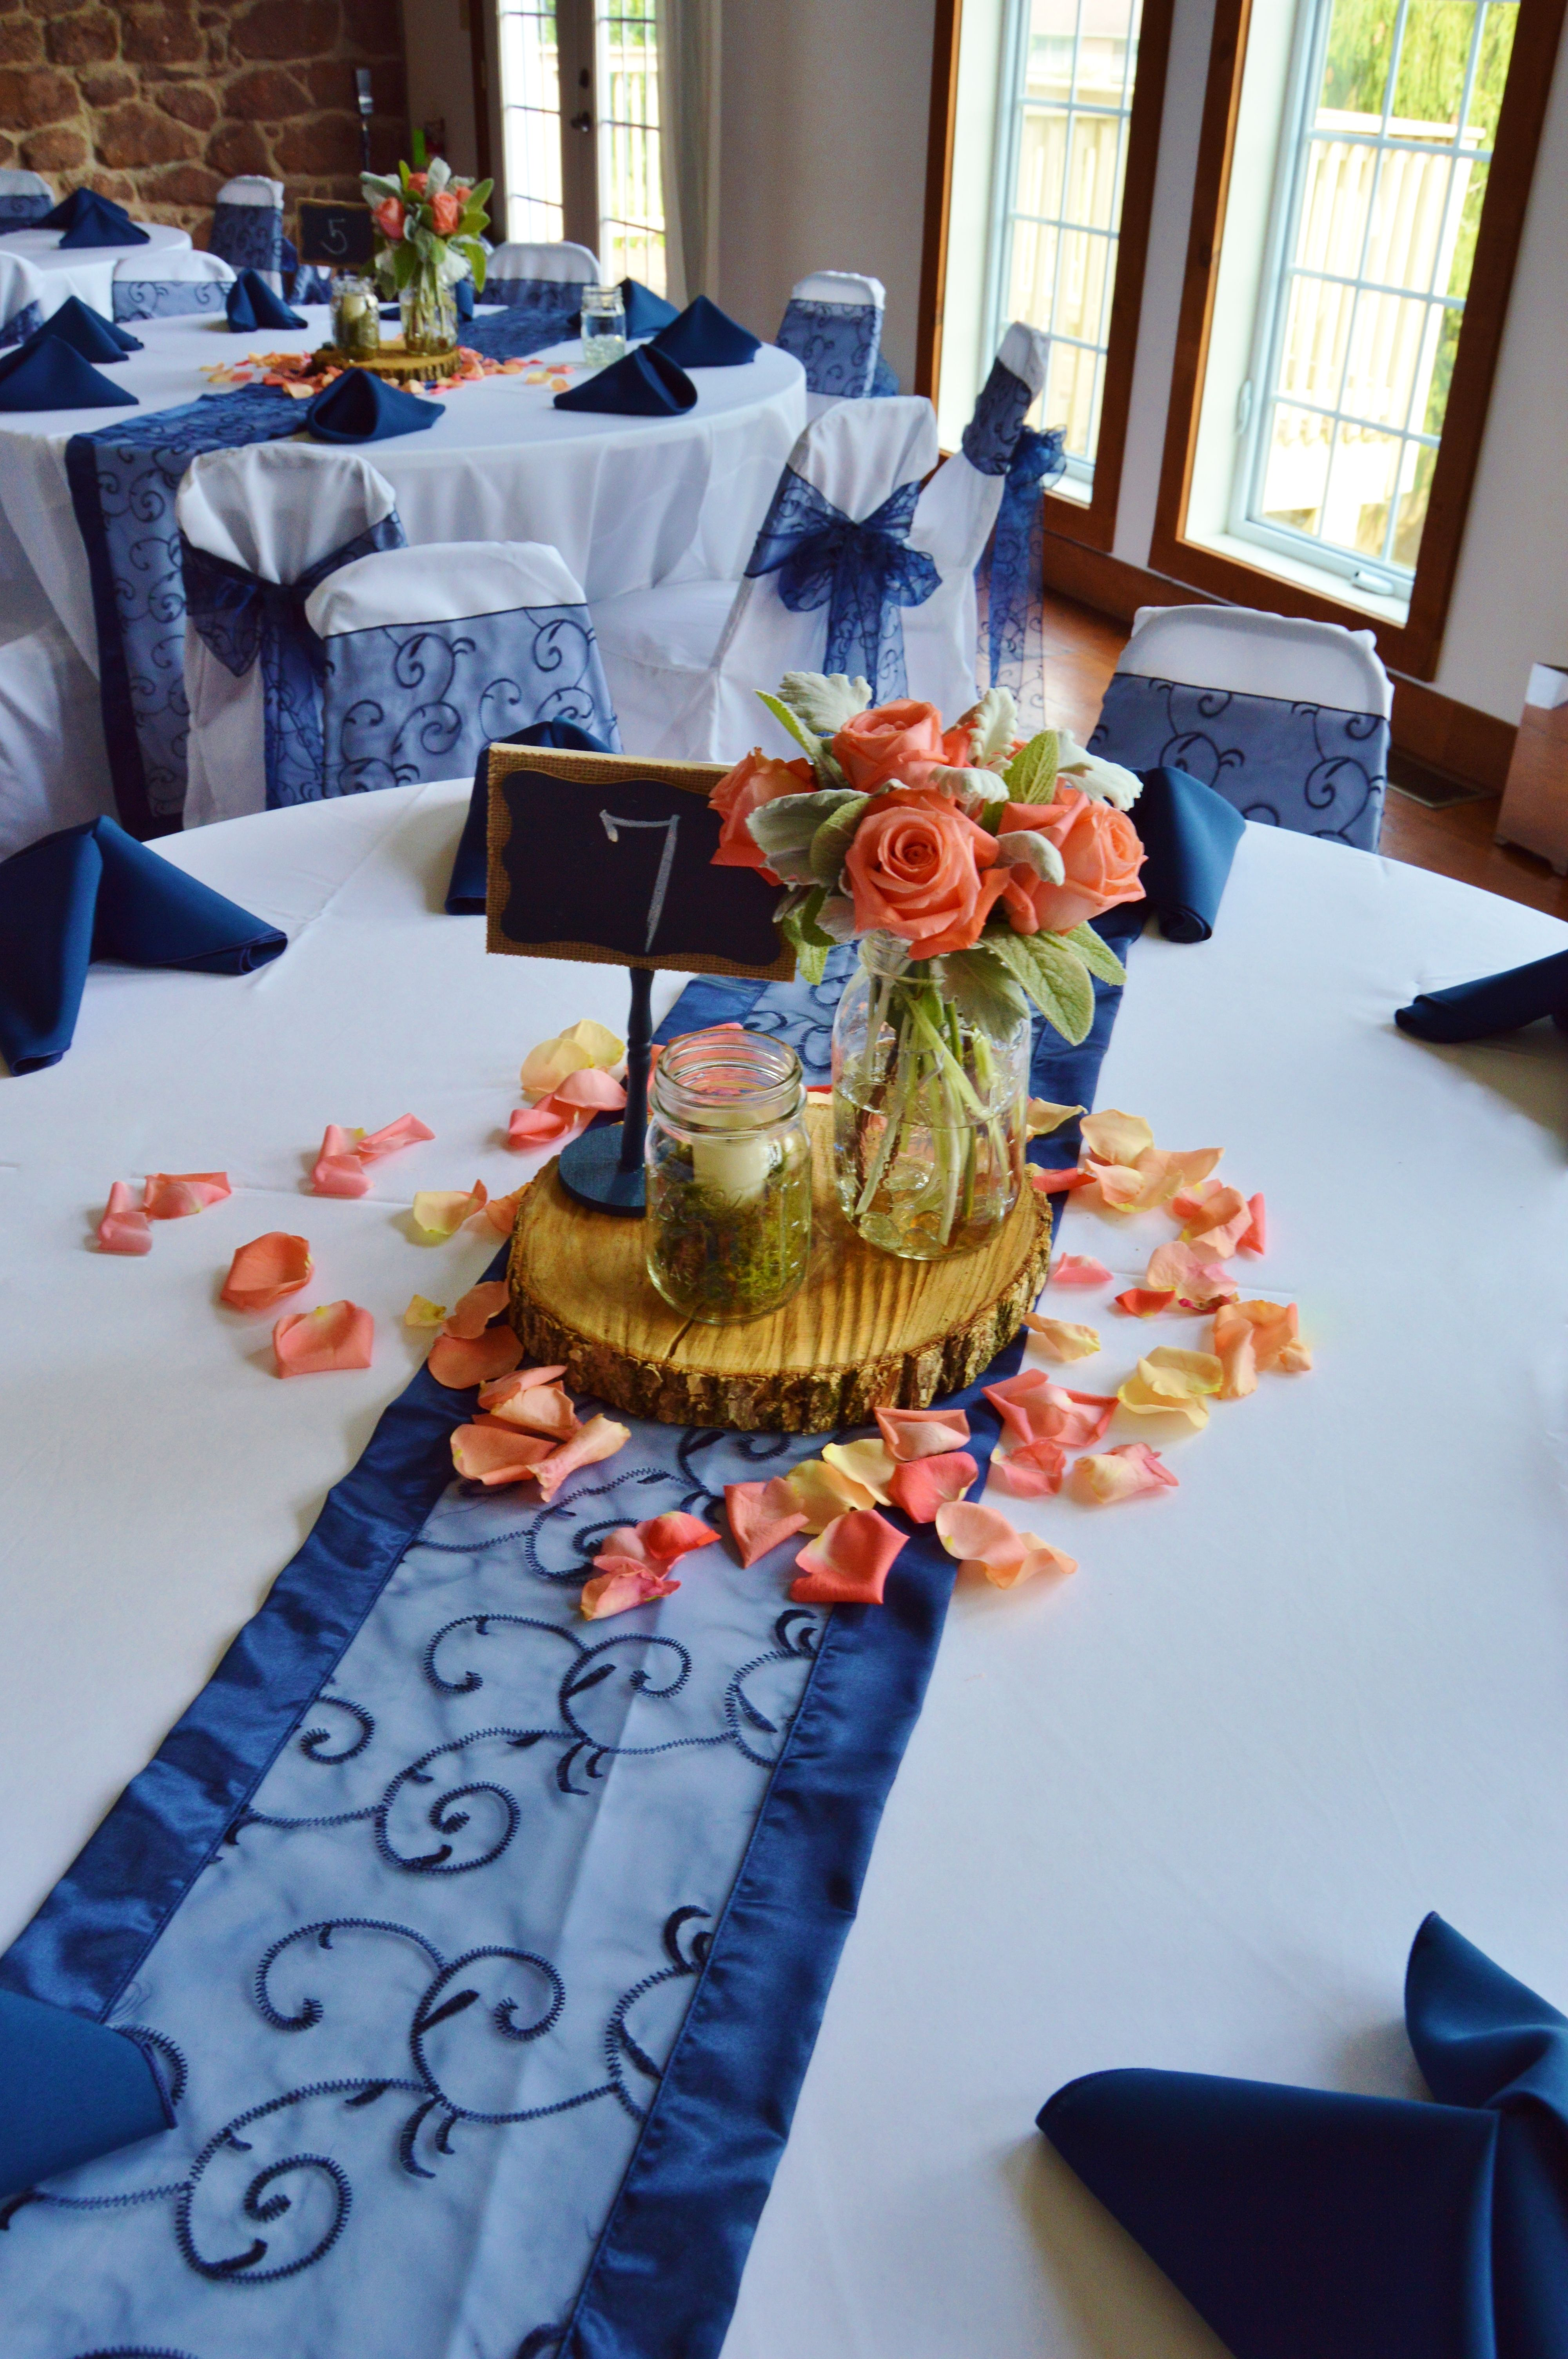 Wood With Glass Coral Roses And Lambs Ear Centerpiece With